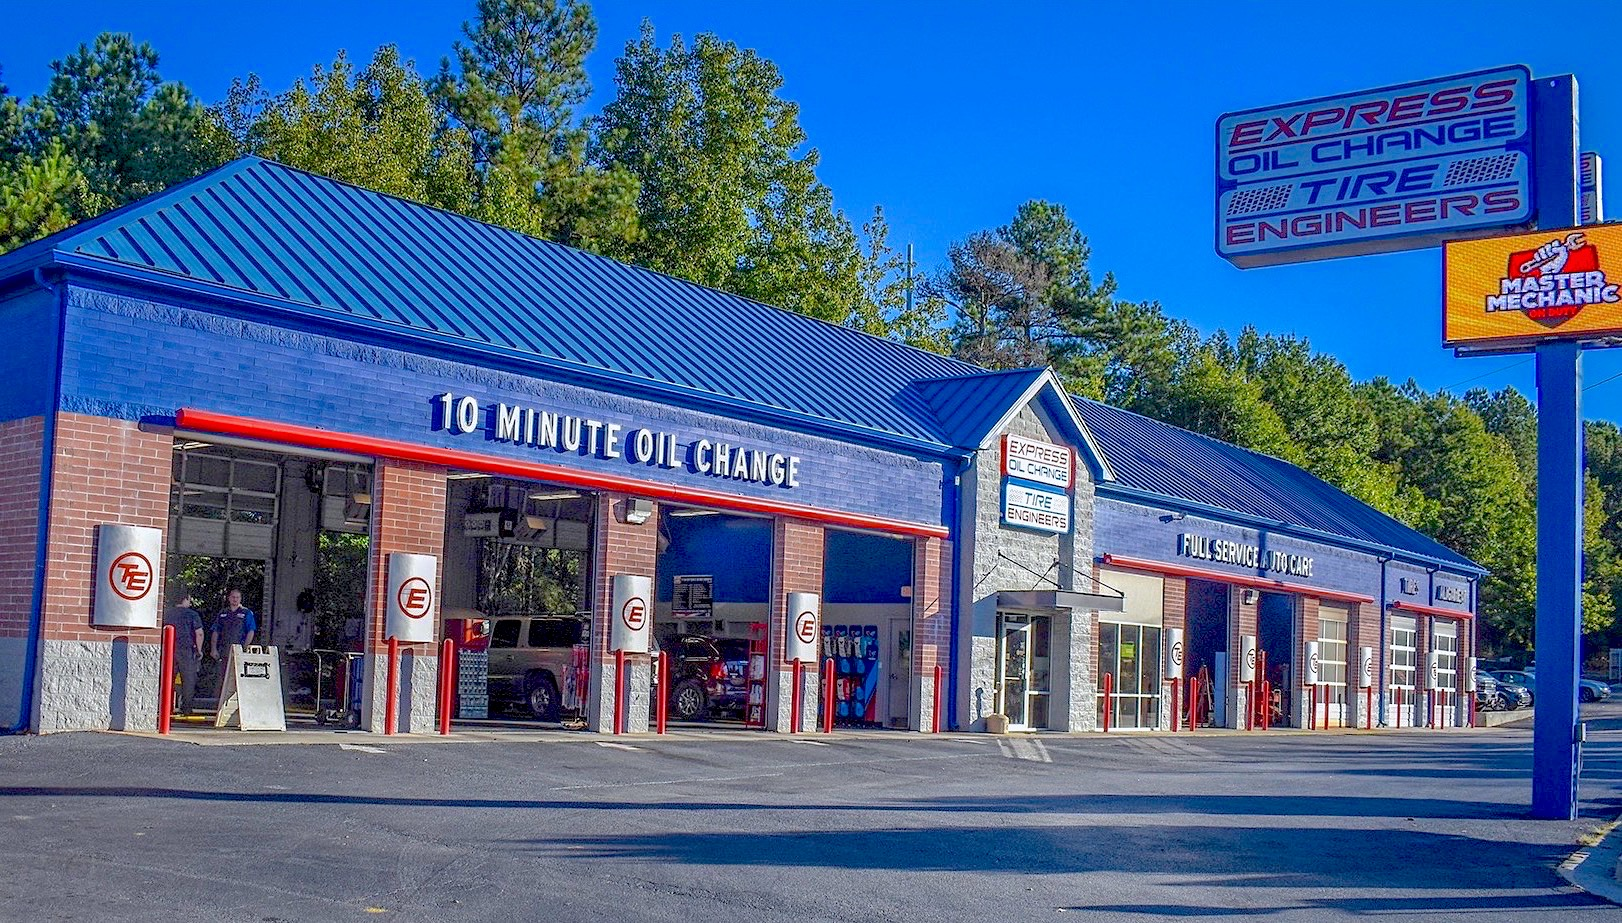 Express Oil Change & Tire Engineers Douglasville, GA store